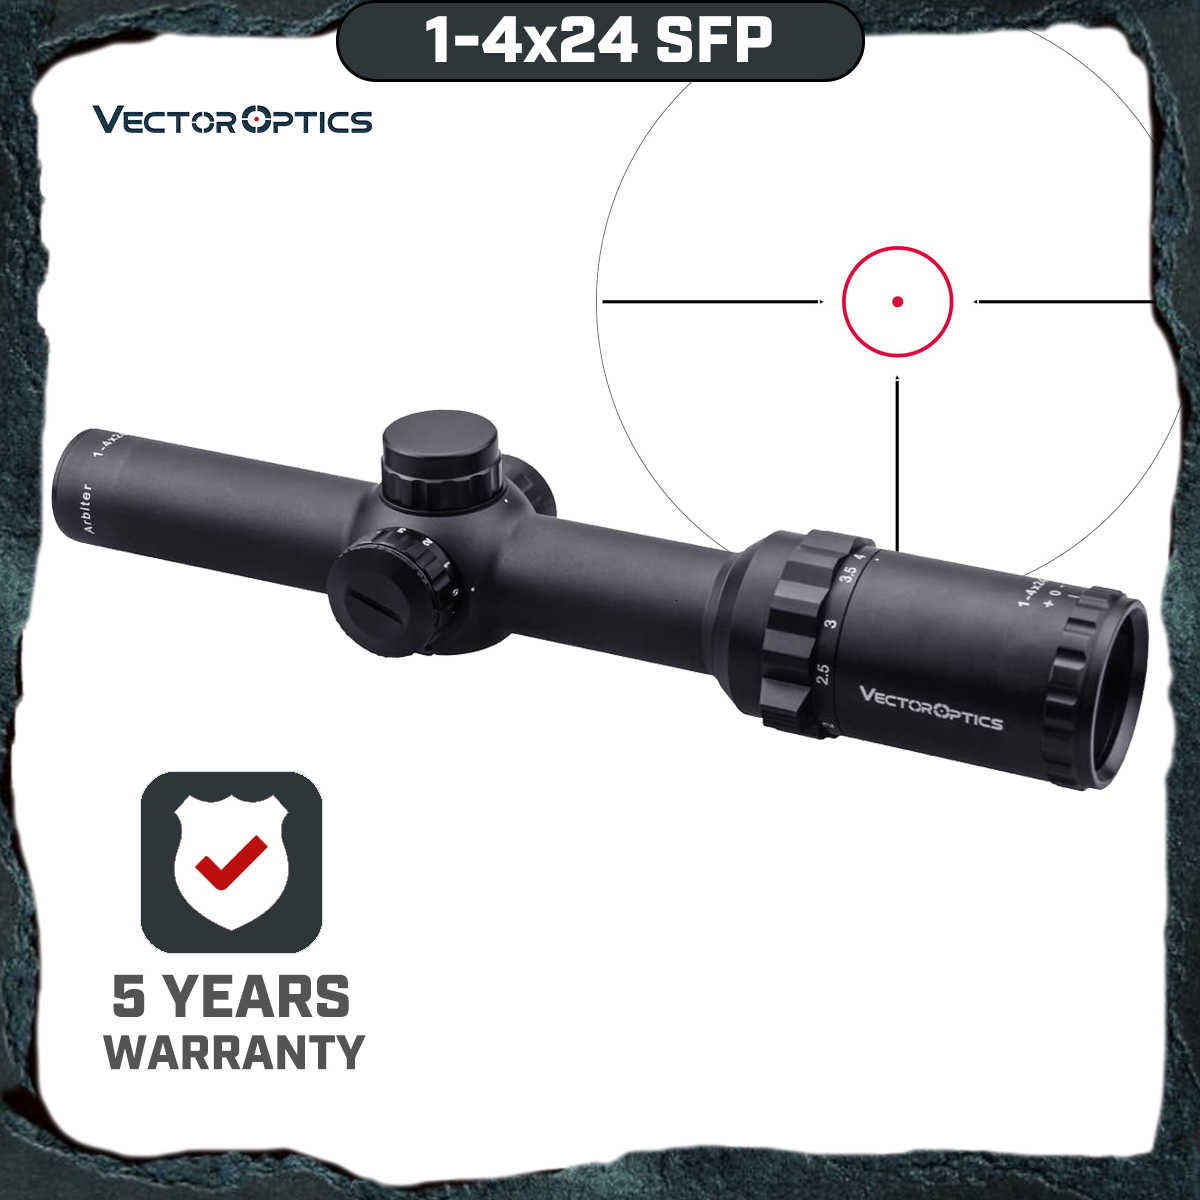 Vector Optics Arbiter 1-4x24 SFP Jacht Riflescope Illuminated Red Dot Sight Voor Zware Terugslag. 308 30-06 cal. Rifles & Airguns